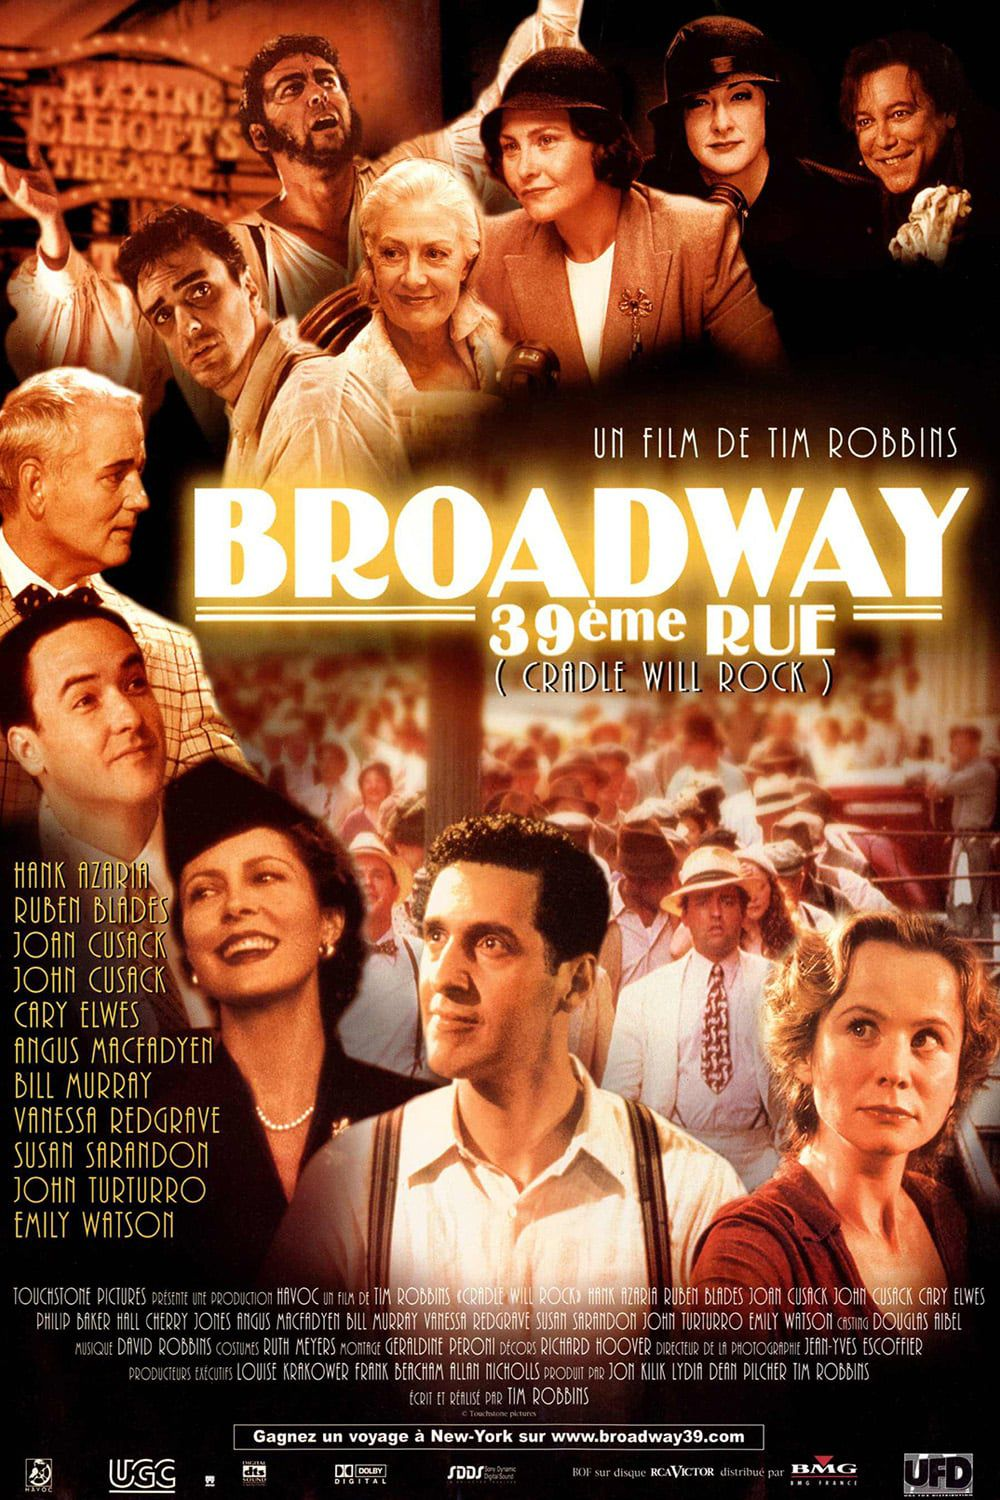 Affiche Poster broadway 39e rue cradle will rock disney touchstone